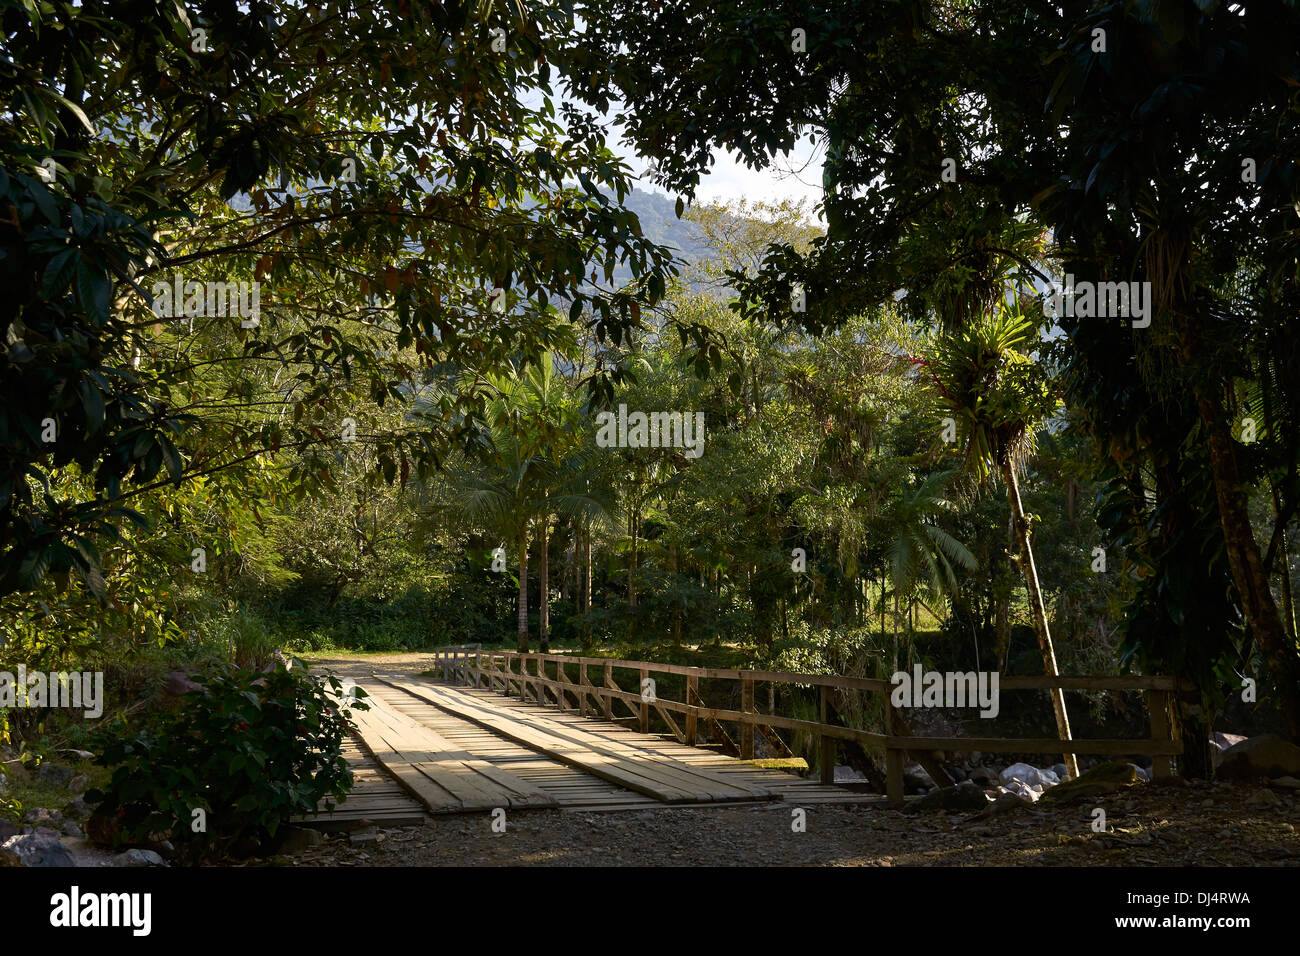 Wooden bridge in the Rainforest - Stock Image